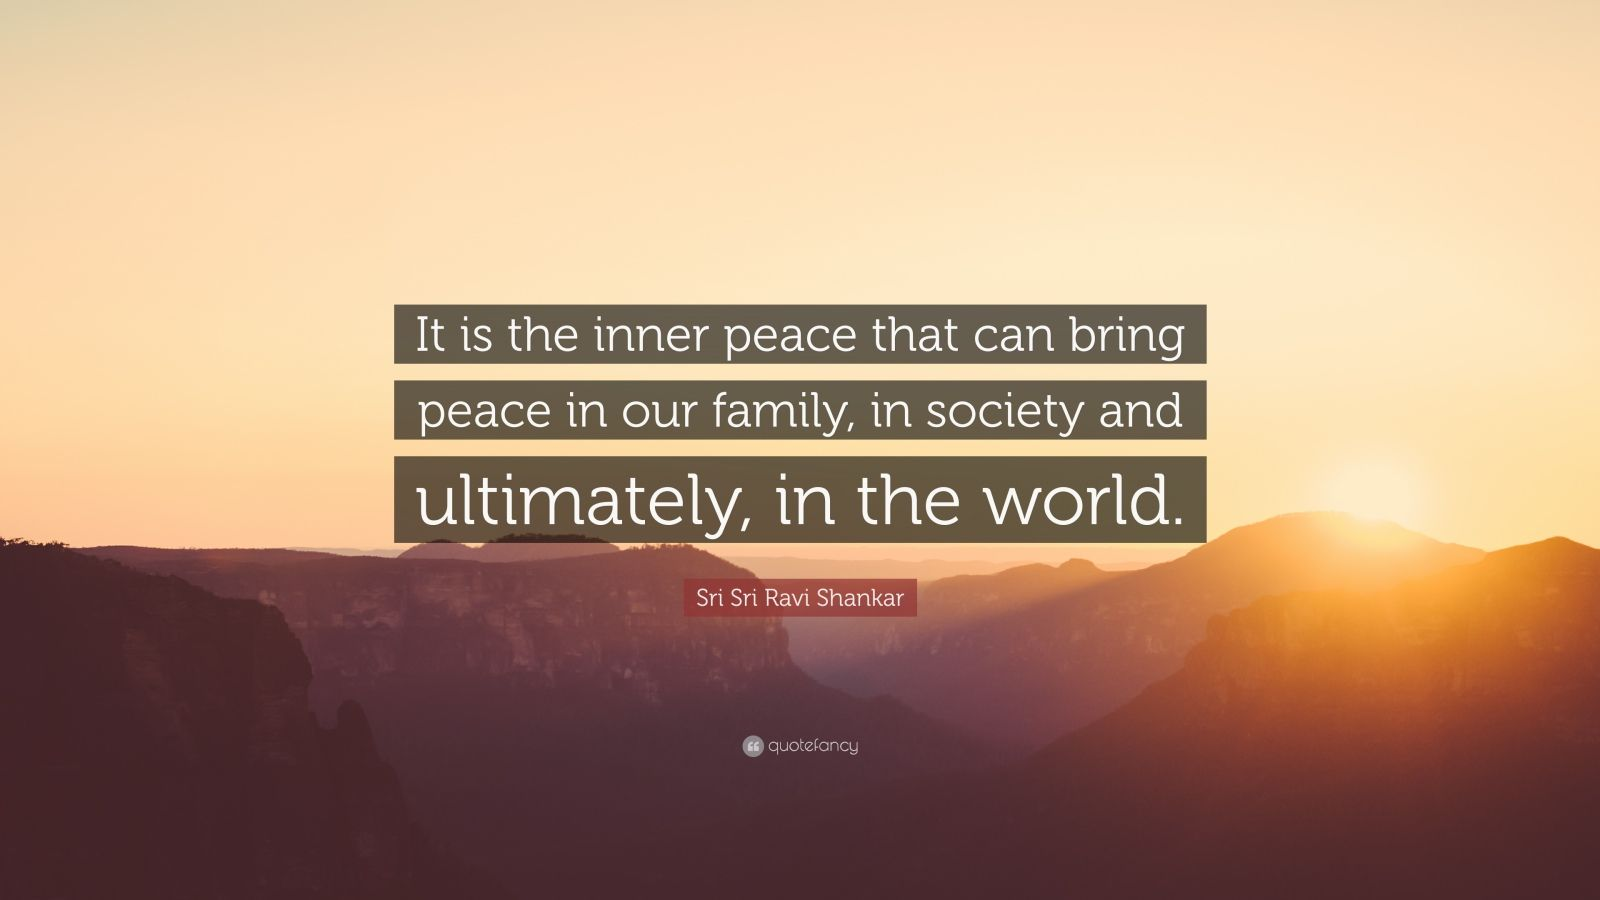 """Sri Sri Ravi Shankar Quote: """"It is the inner peace that can bring peace in our family, in society and ultimately, in the world."""""""